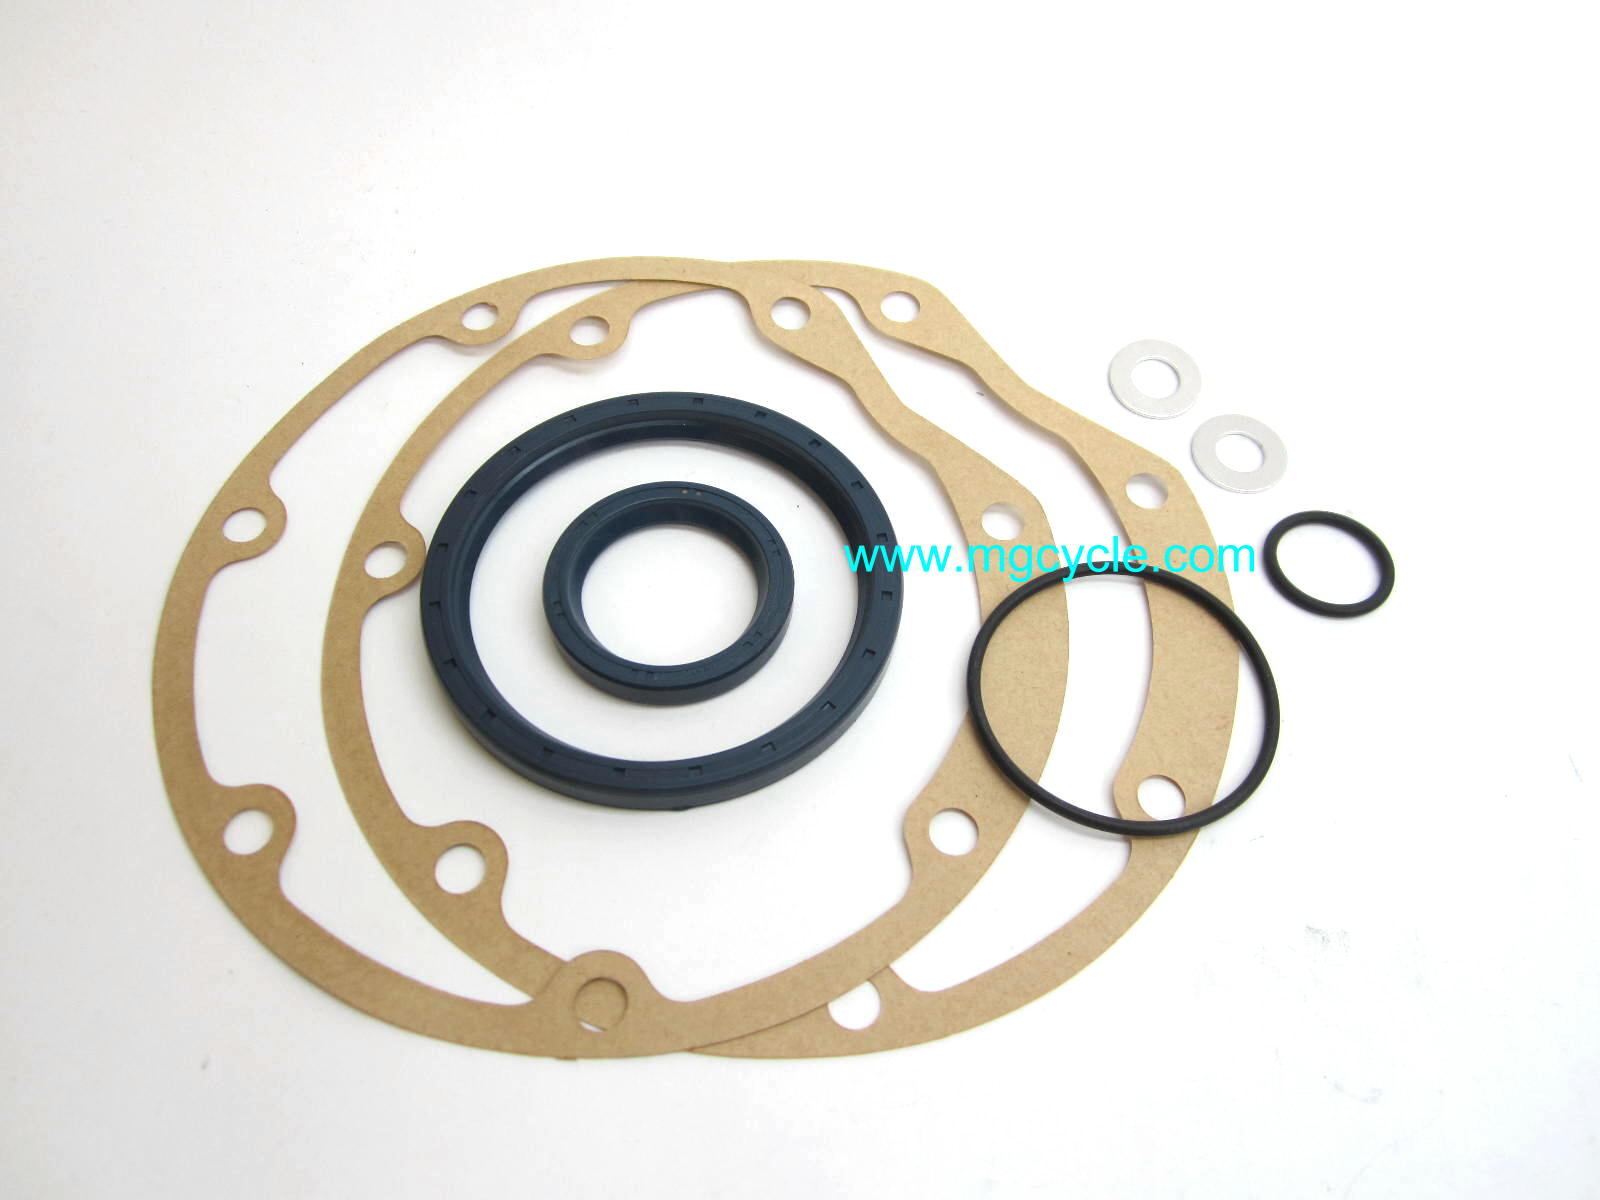 Final drive sealing kit for small blocks V35 V50 V65 some Breva